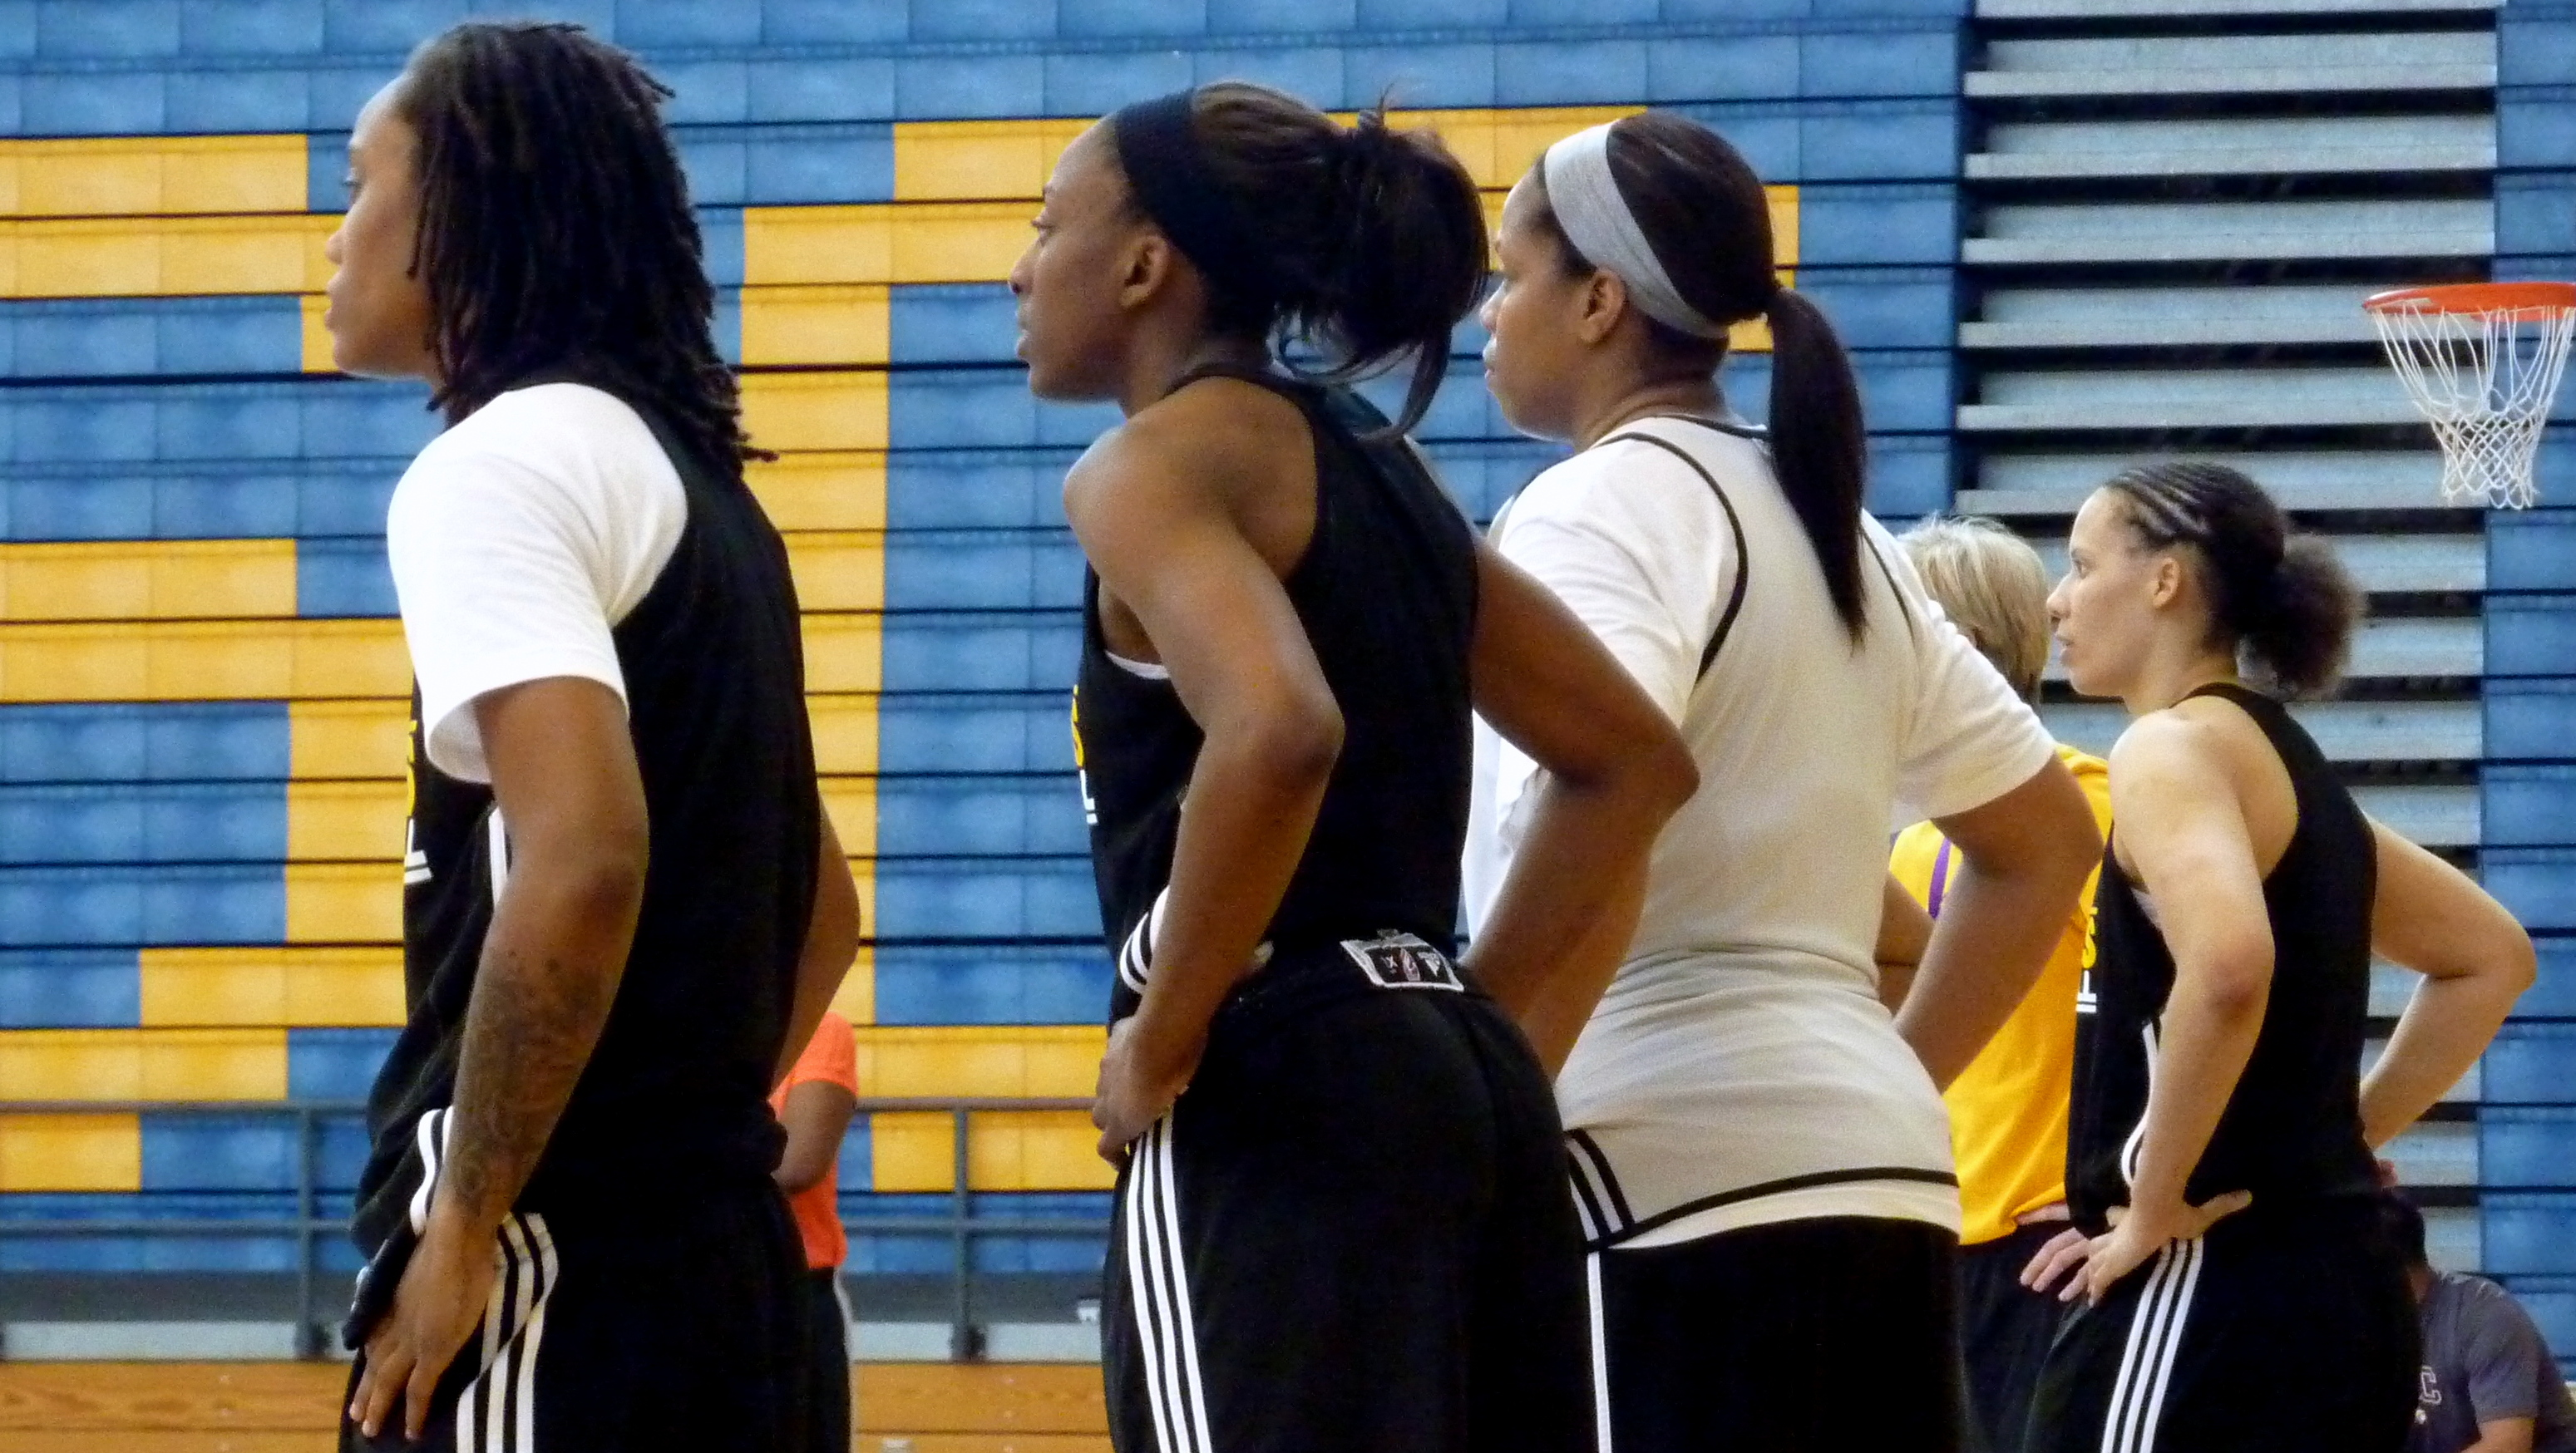 New coach Carol Ross sets tone for aggressive play as Los Angeles Sparks begin training camp